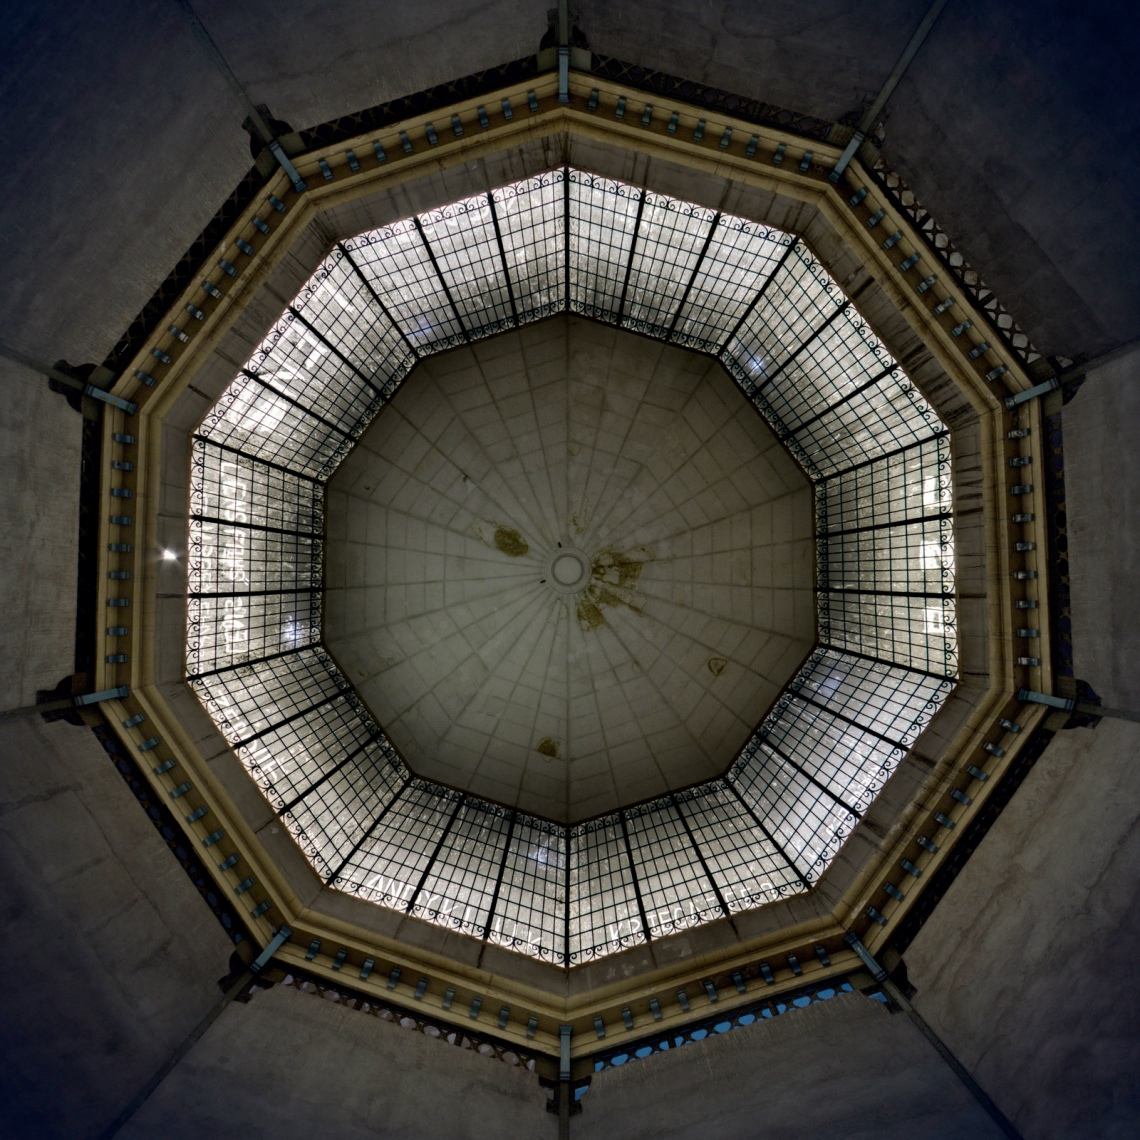 Look up! Photograph by Forgotten Heritage Photography. Used with permission.